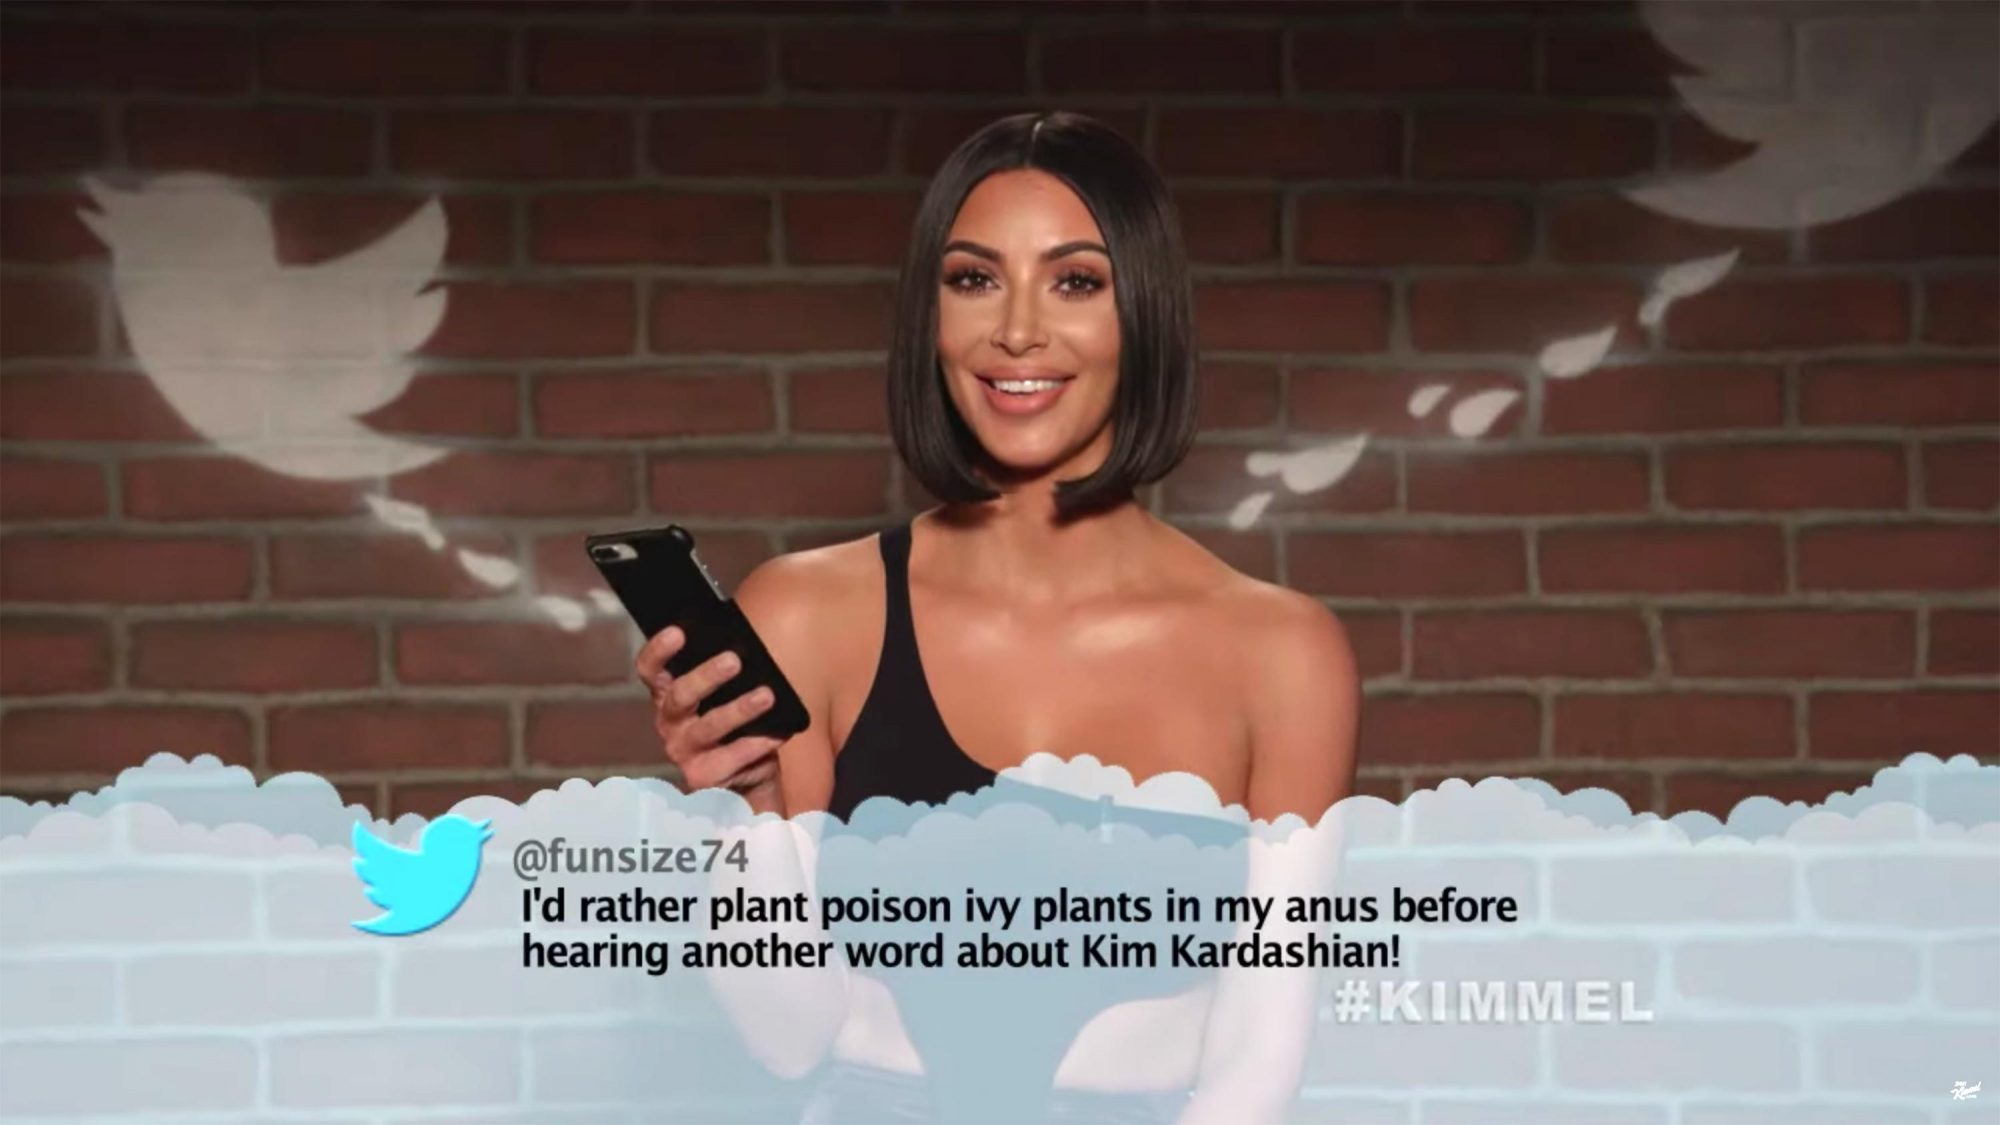 Jimmy Kimmel Live Celebrities Read Mean Tweets #12